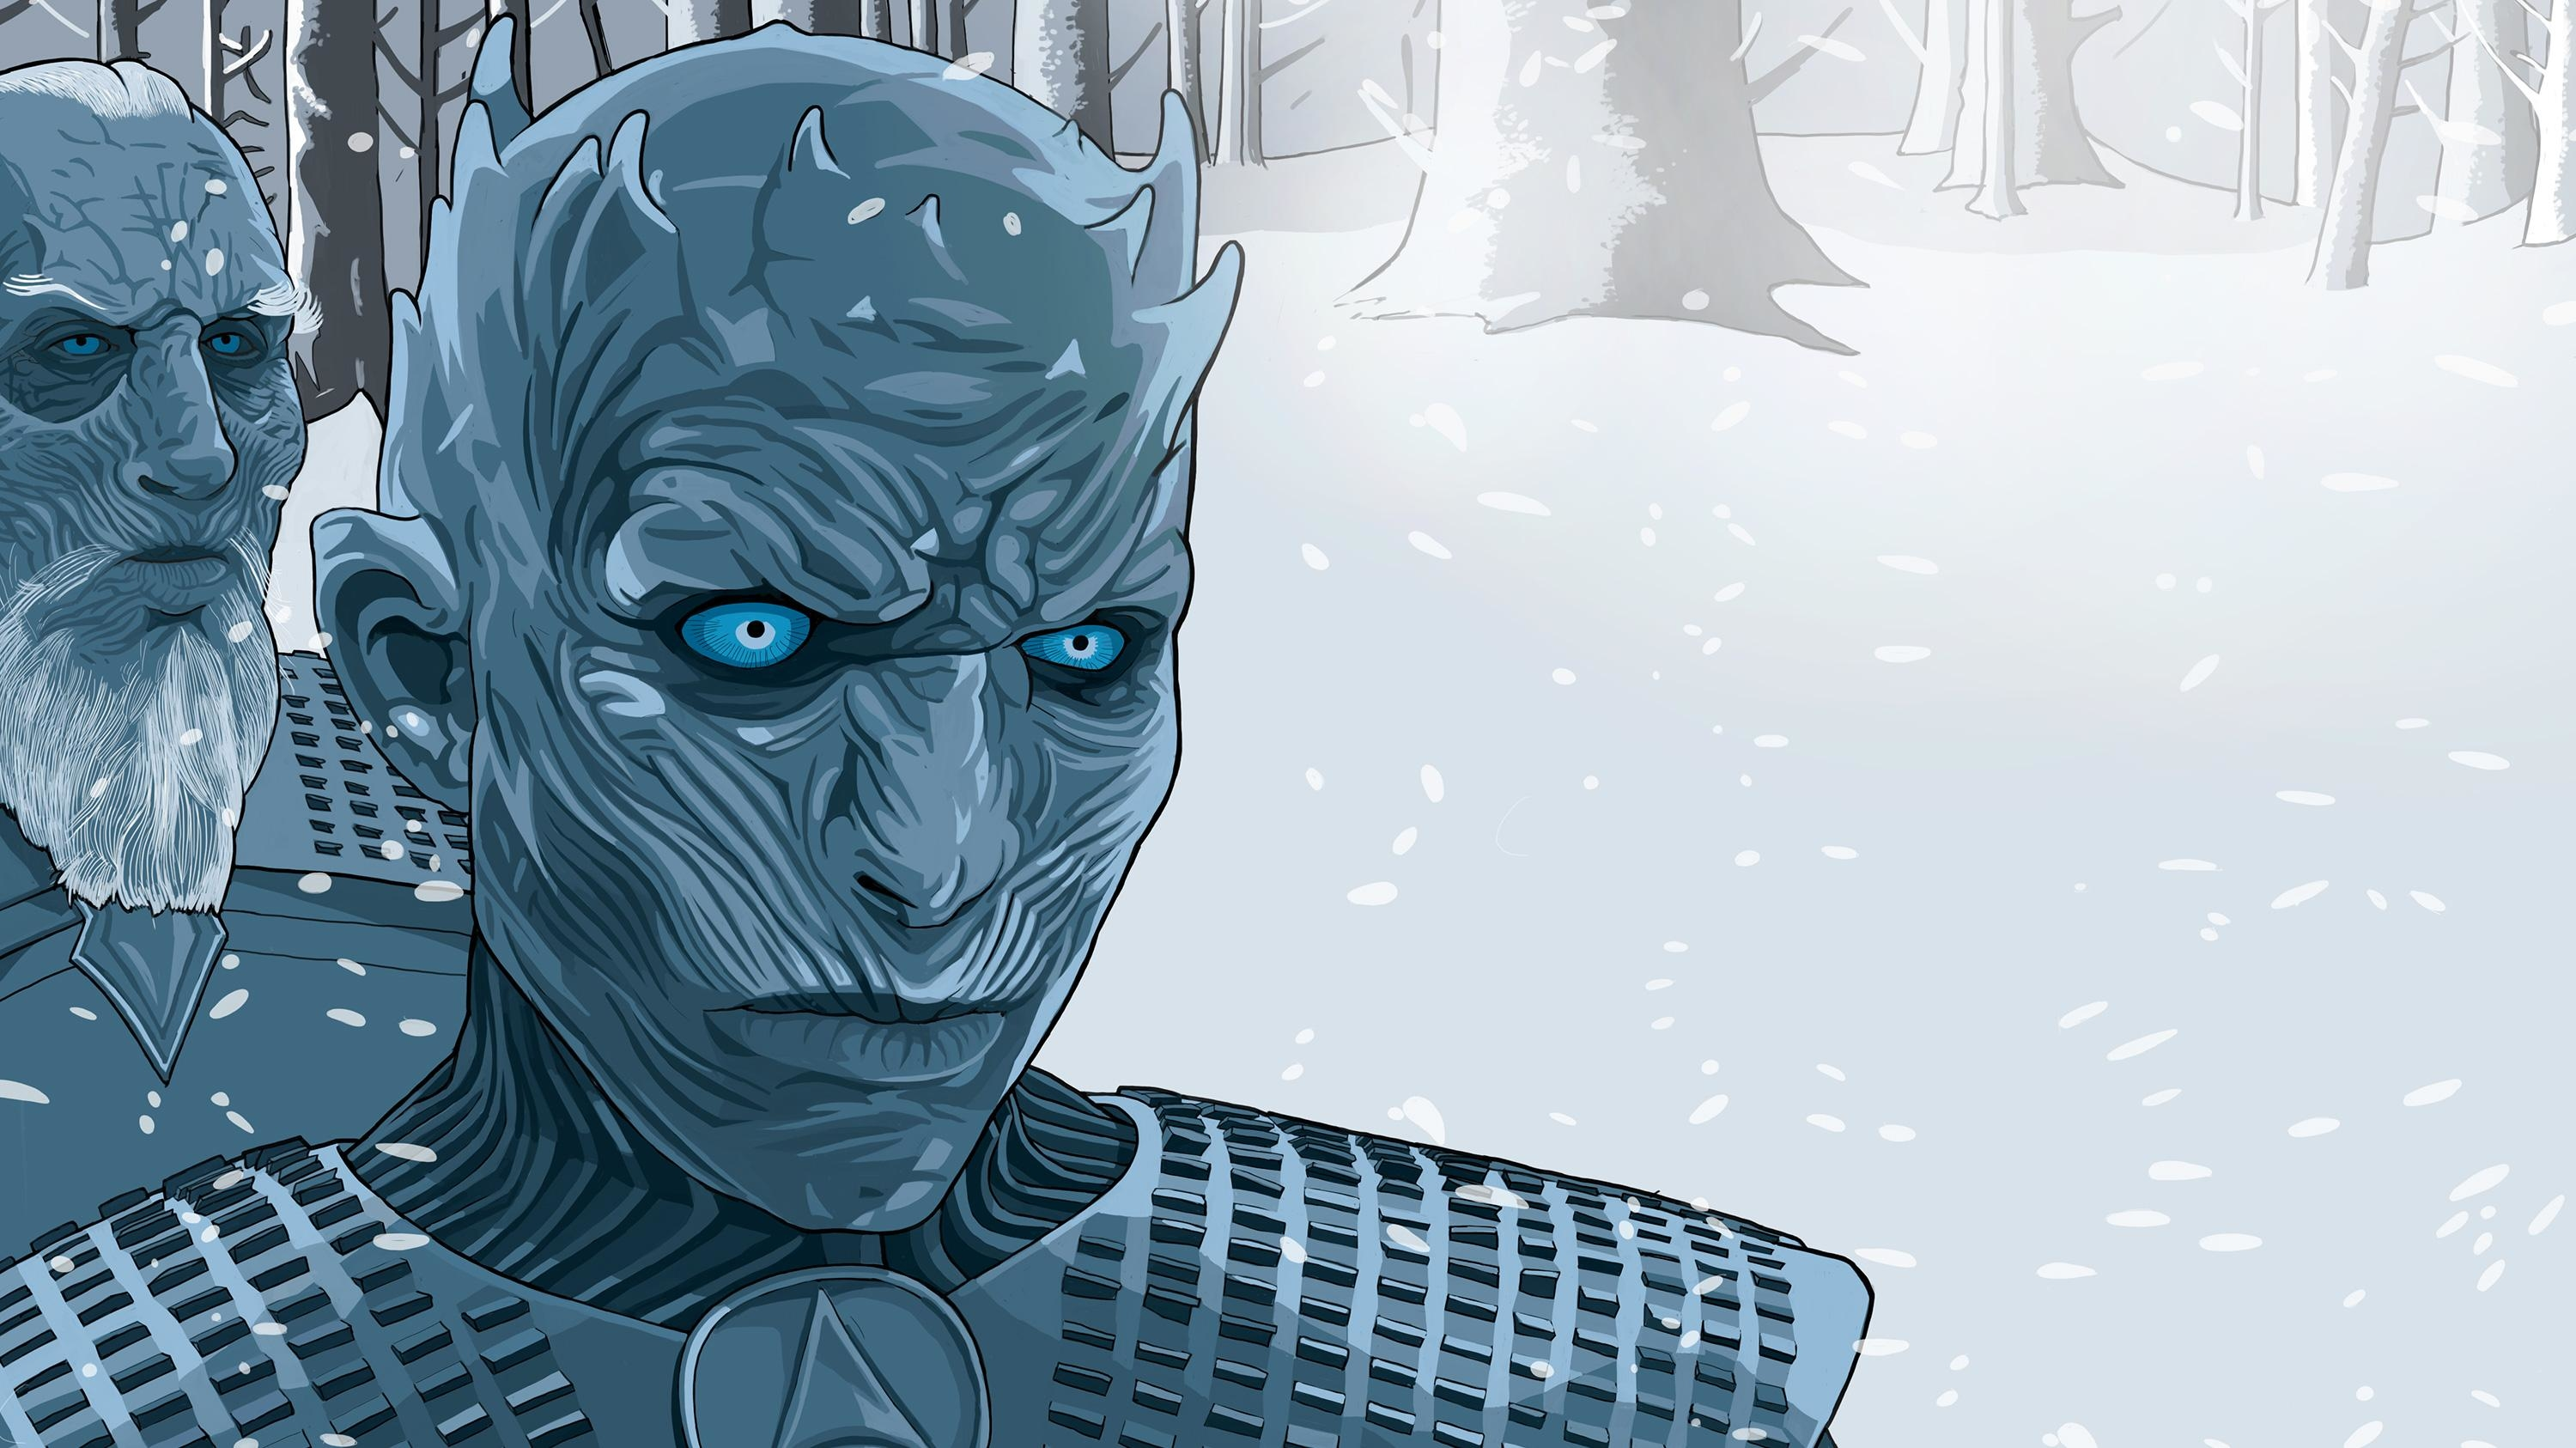 White Walker Illustration Wallpaper Hd Movies 4k Wallpapers